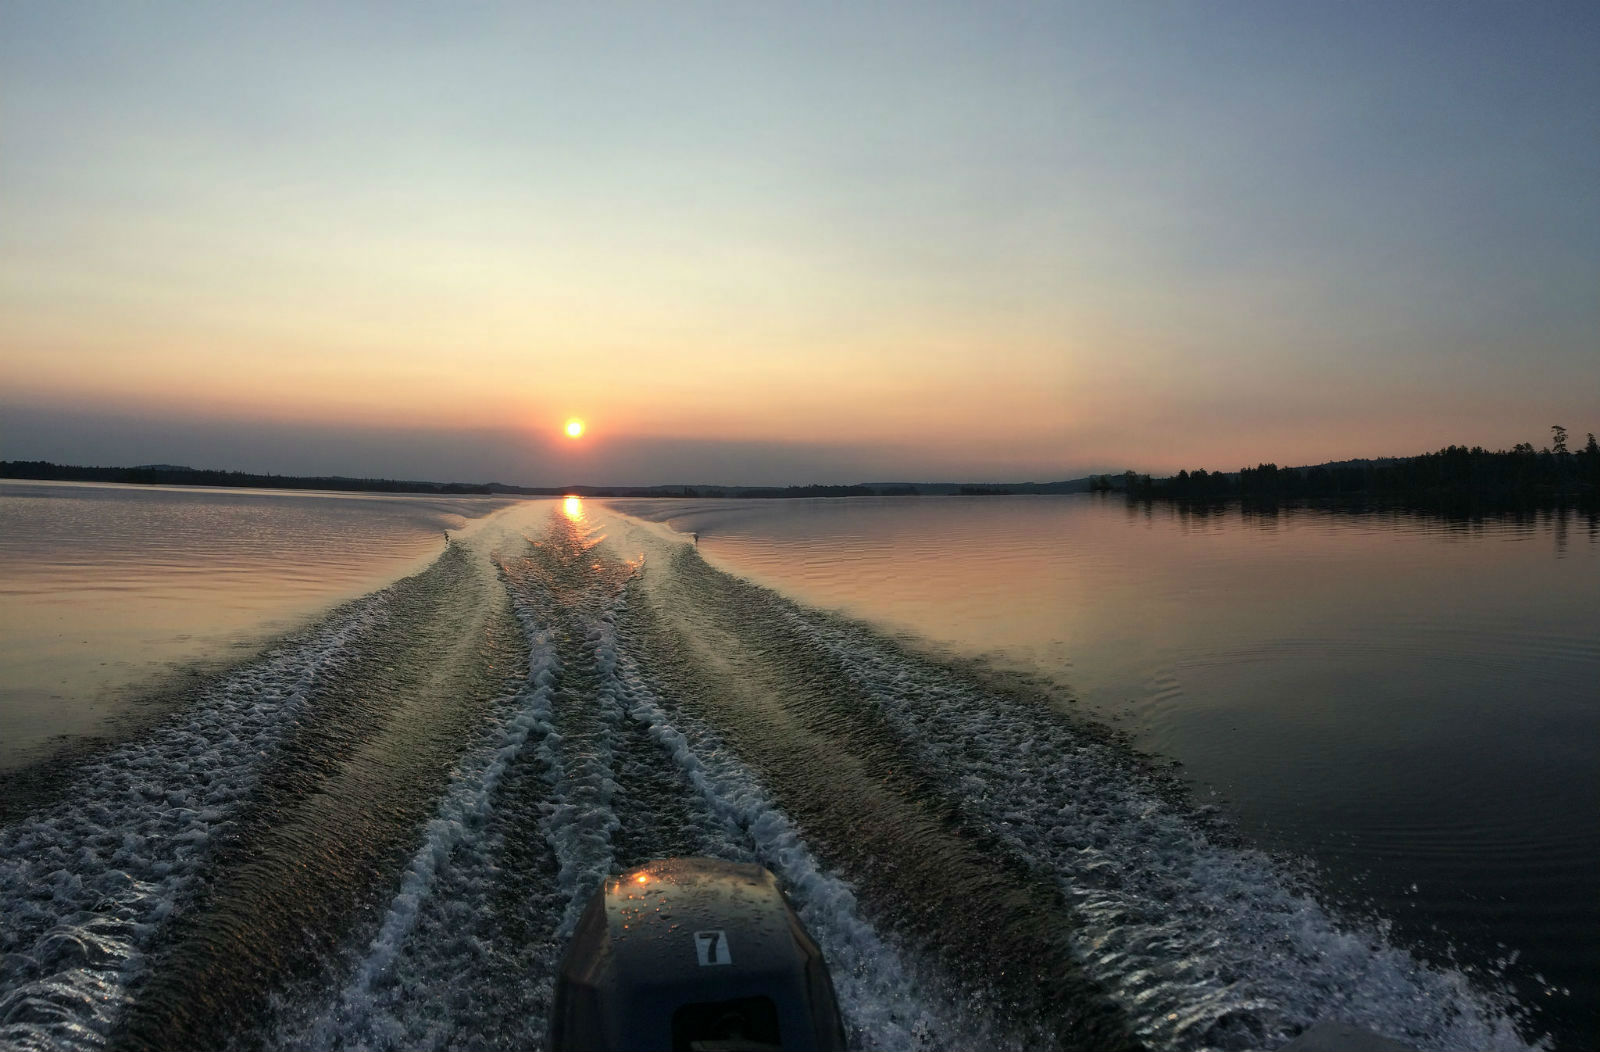 Beautiful sunset on one of our fishing trips...this is what it's all about.